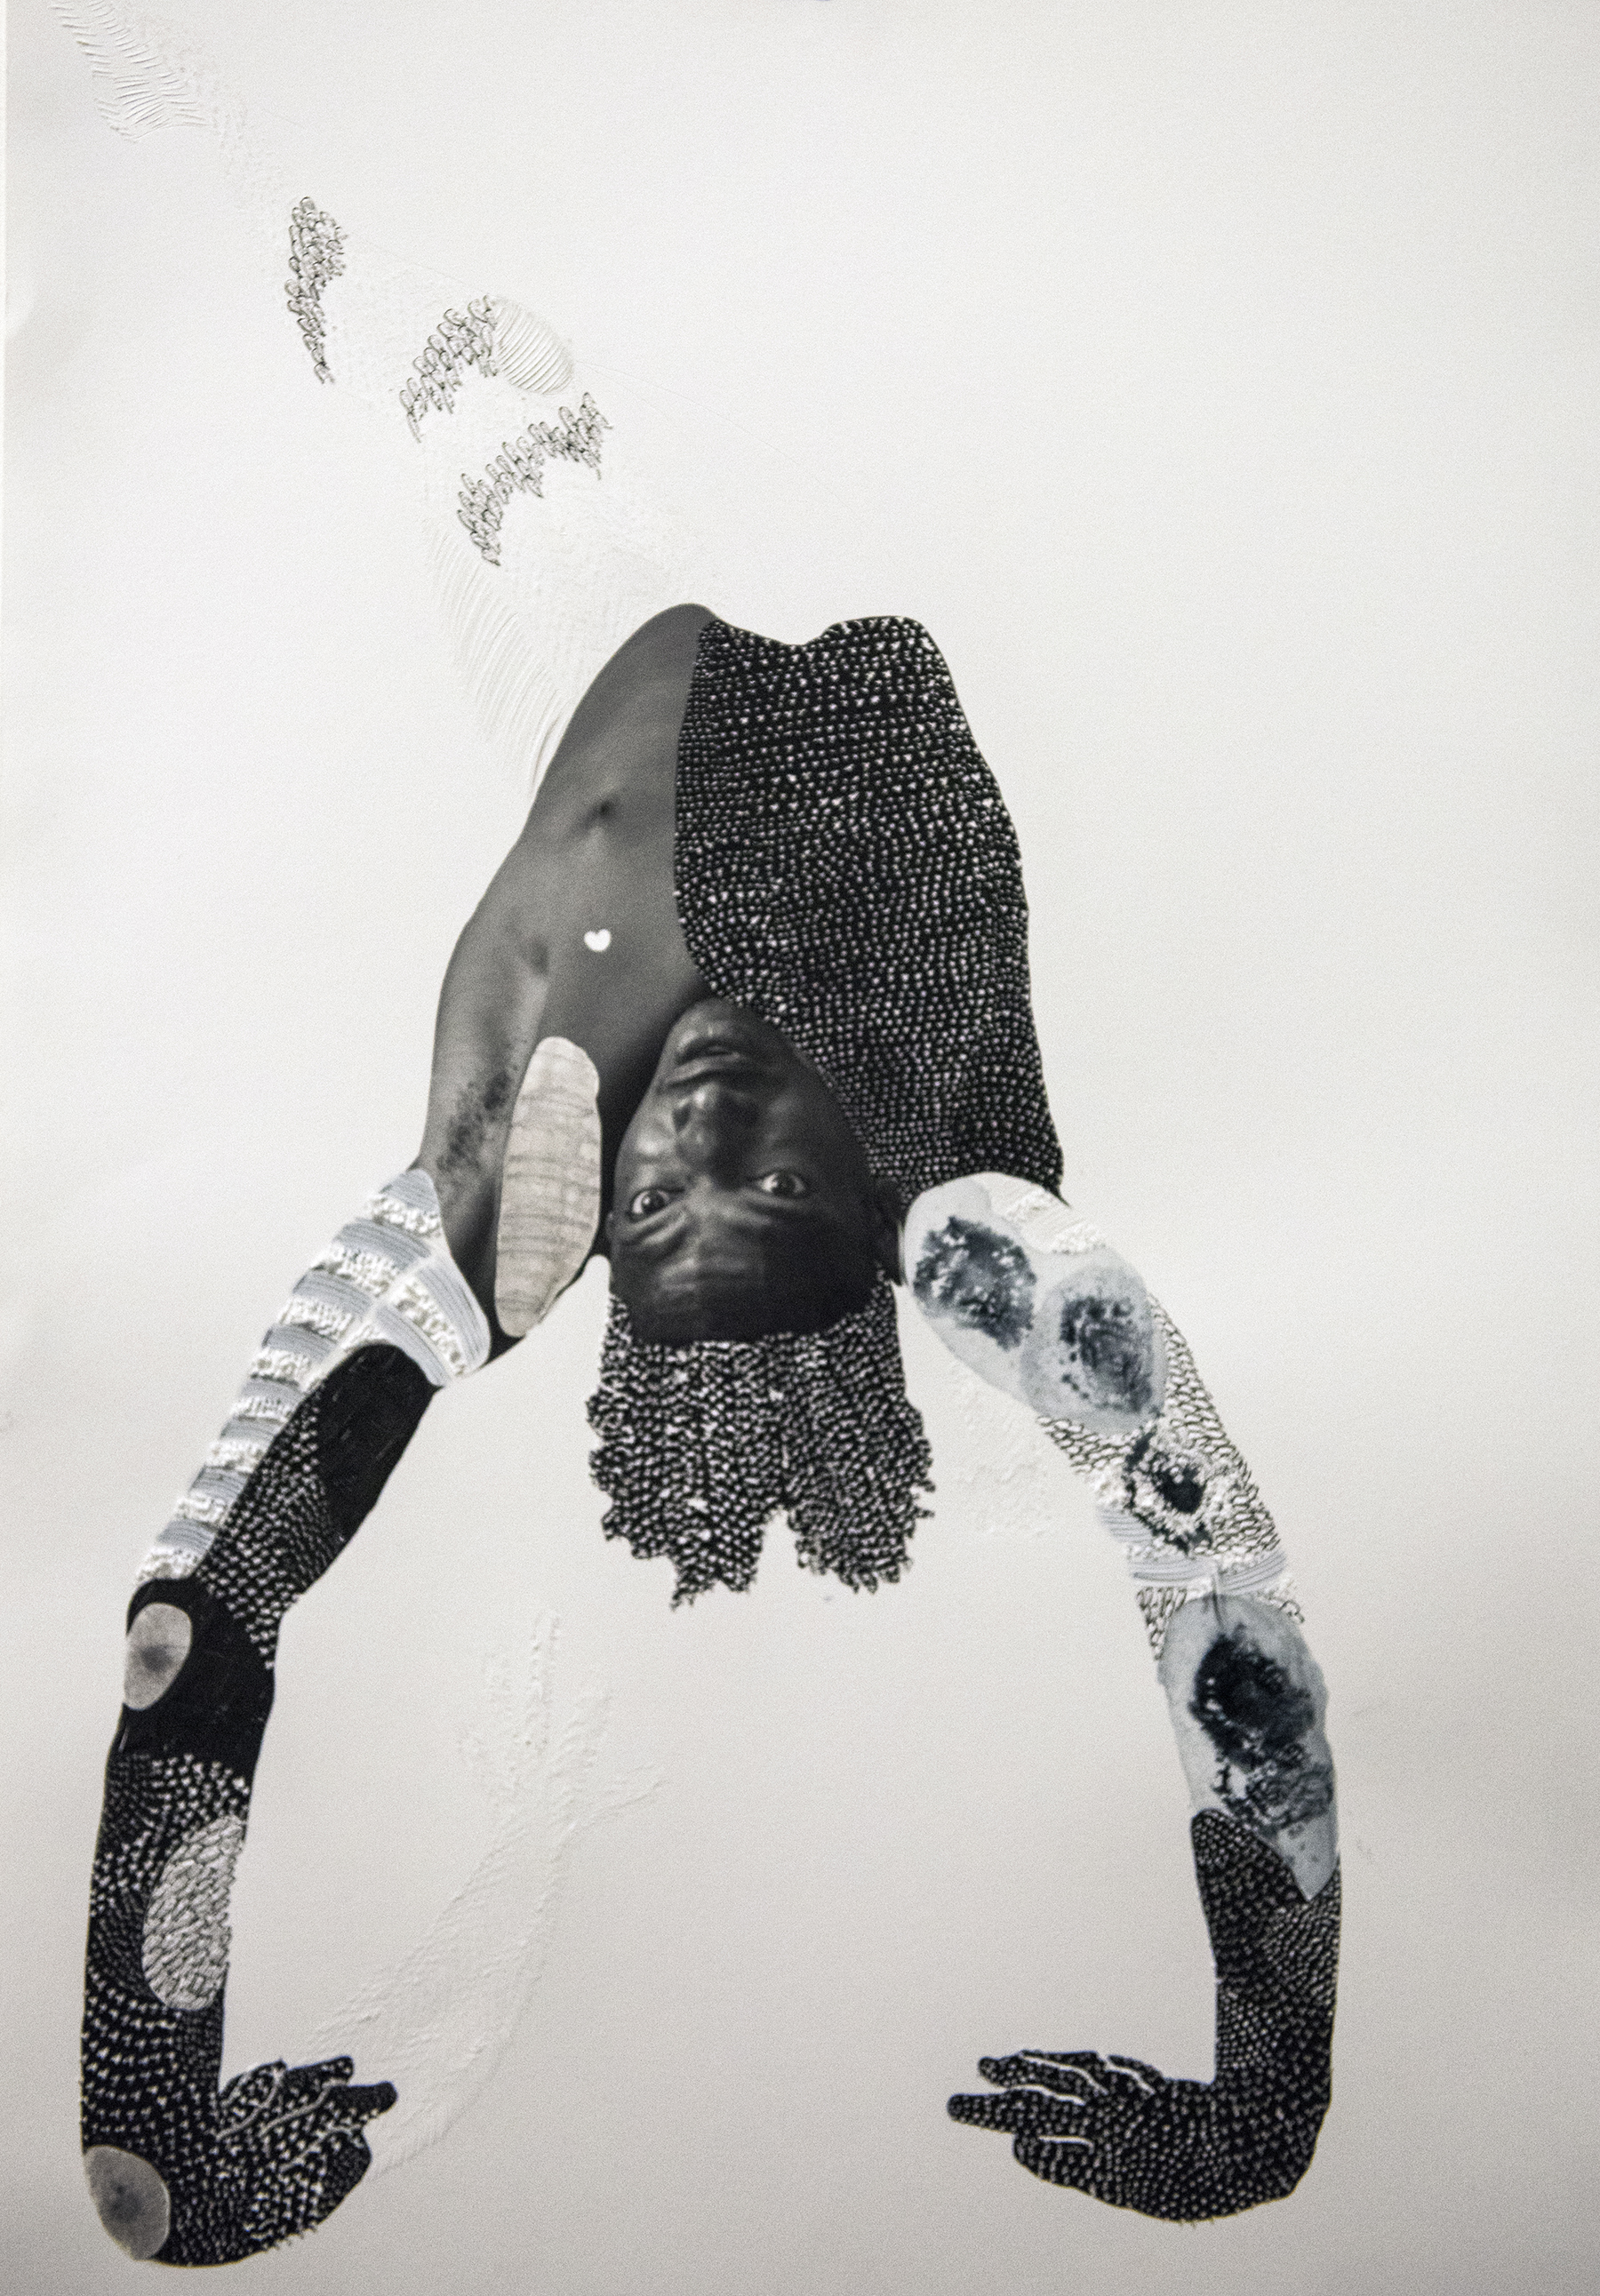 Shift   Hand sculpted paper photo print 22 x 18 in